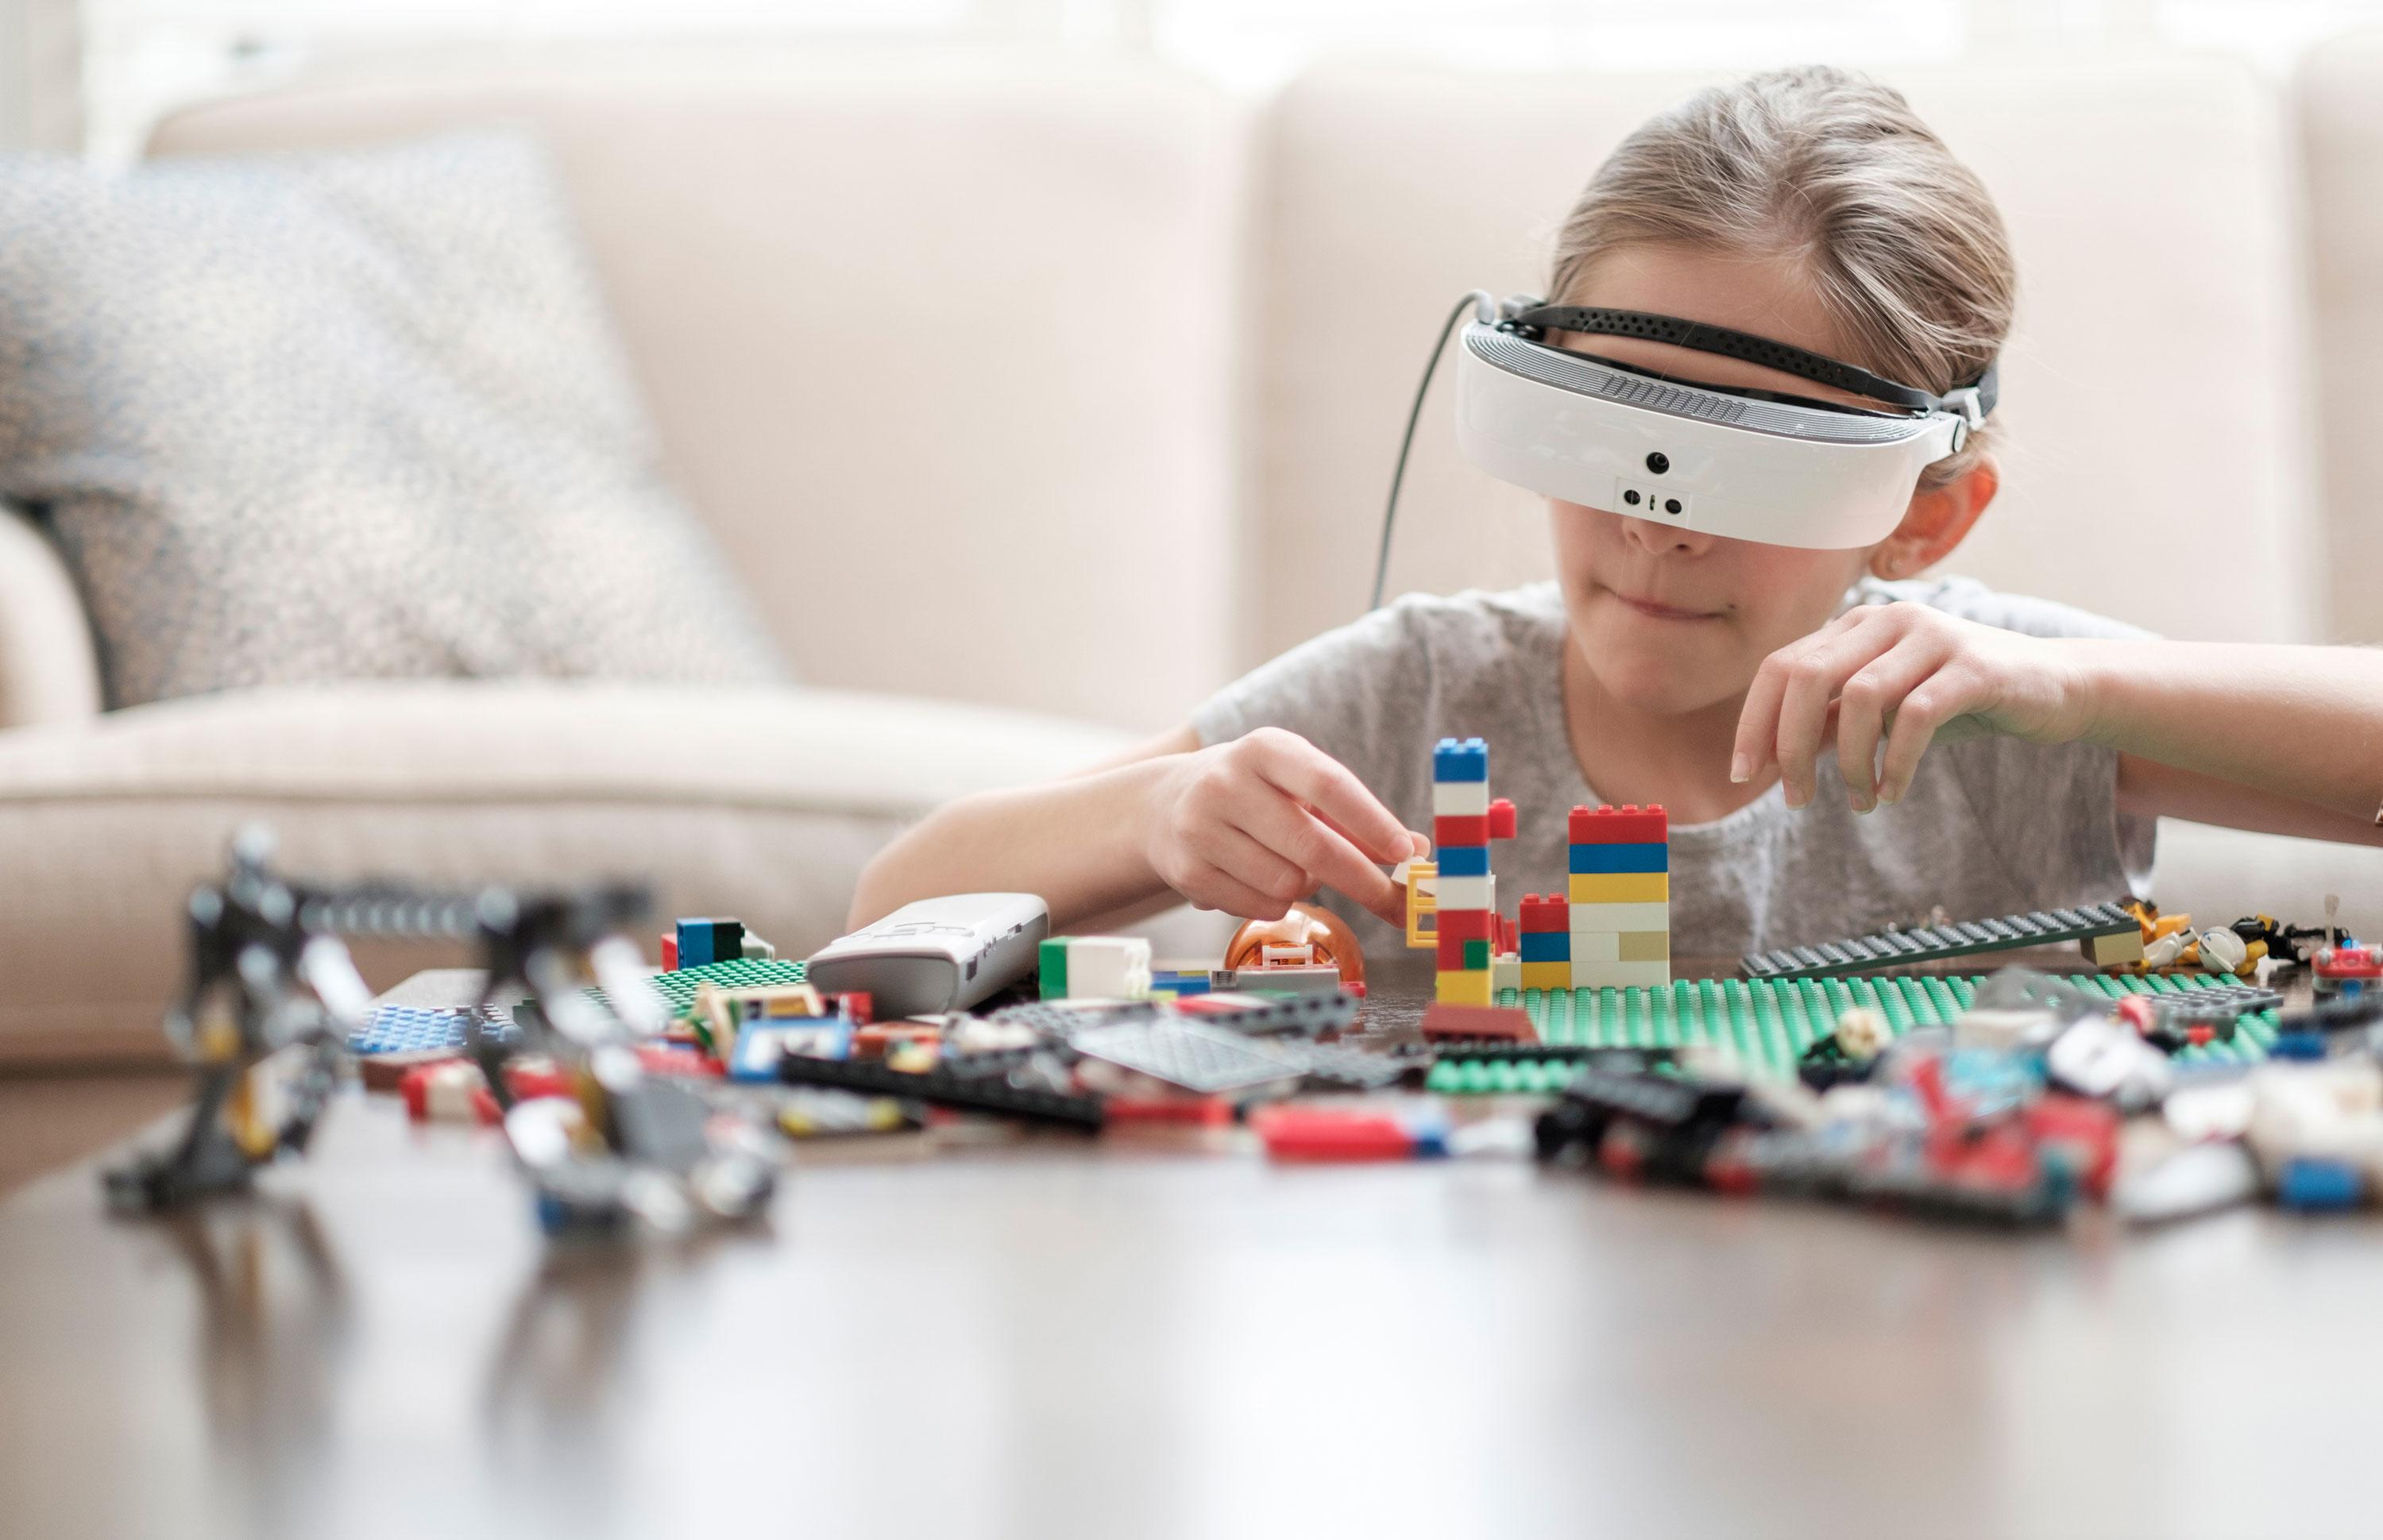 A child wearing eSight and using it to build Lego